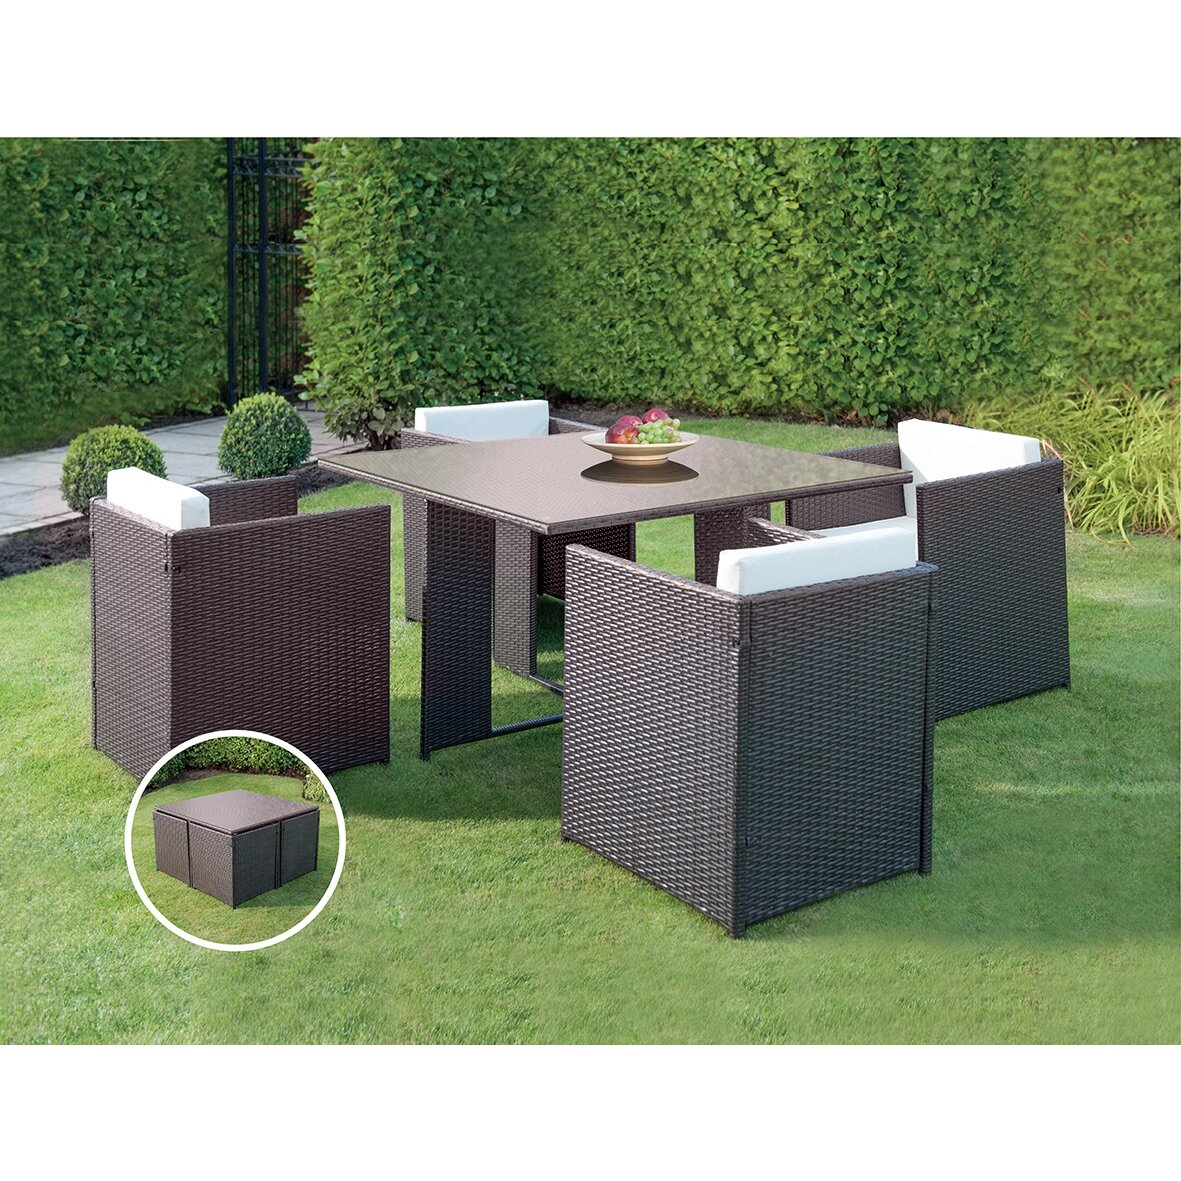 5 piece patio dining set sale collections